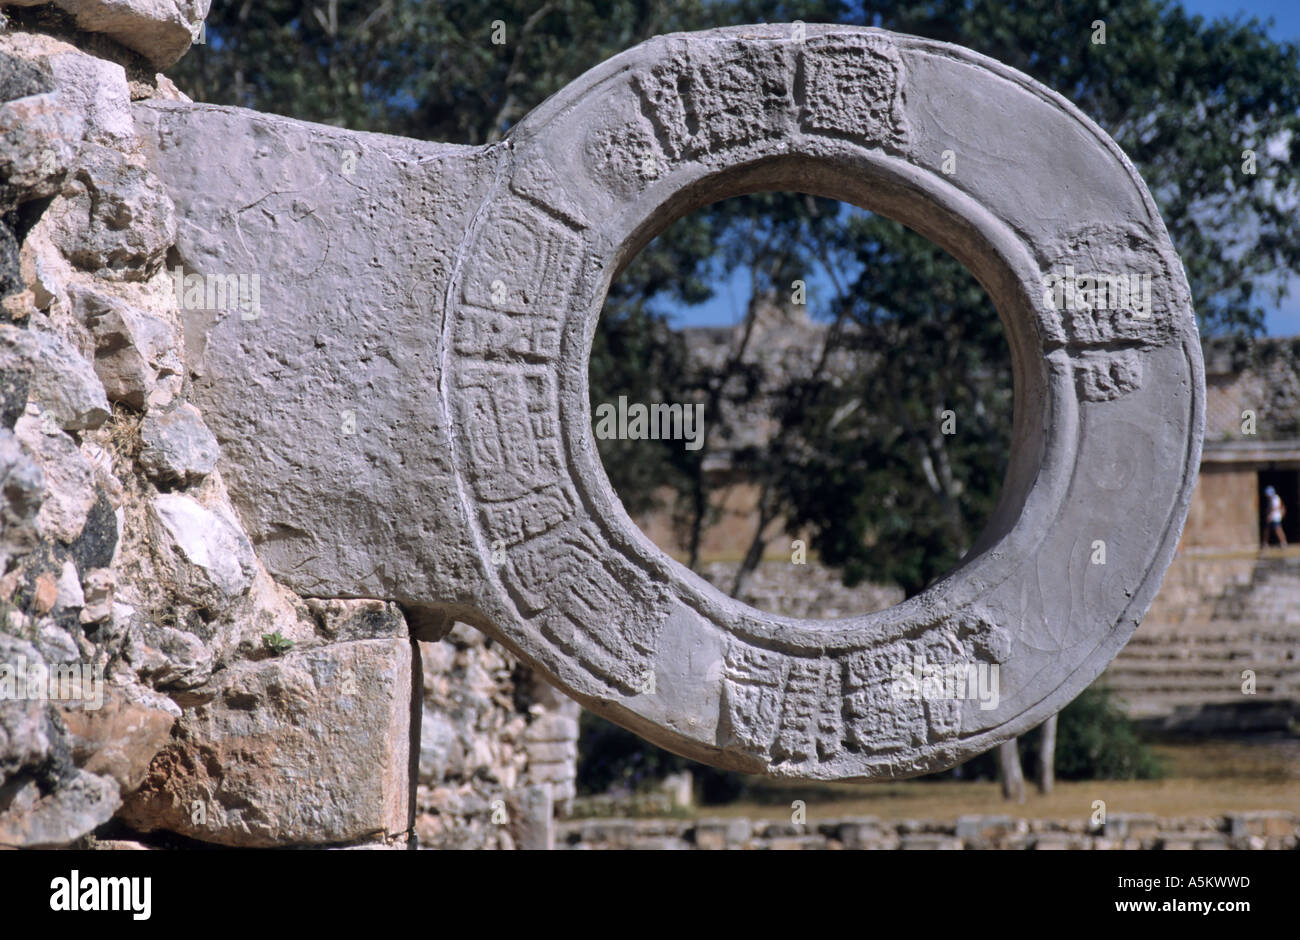 Mexico yucatan state uxmal ball court details of a stone hoop used as the goal for the mayan ball game - Stock Image